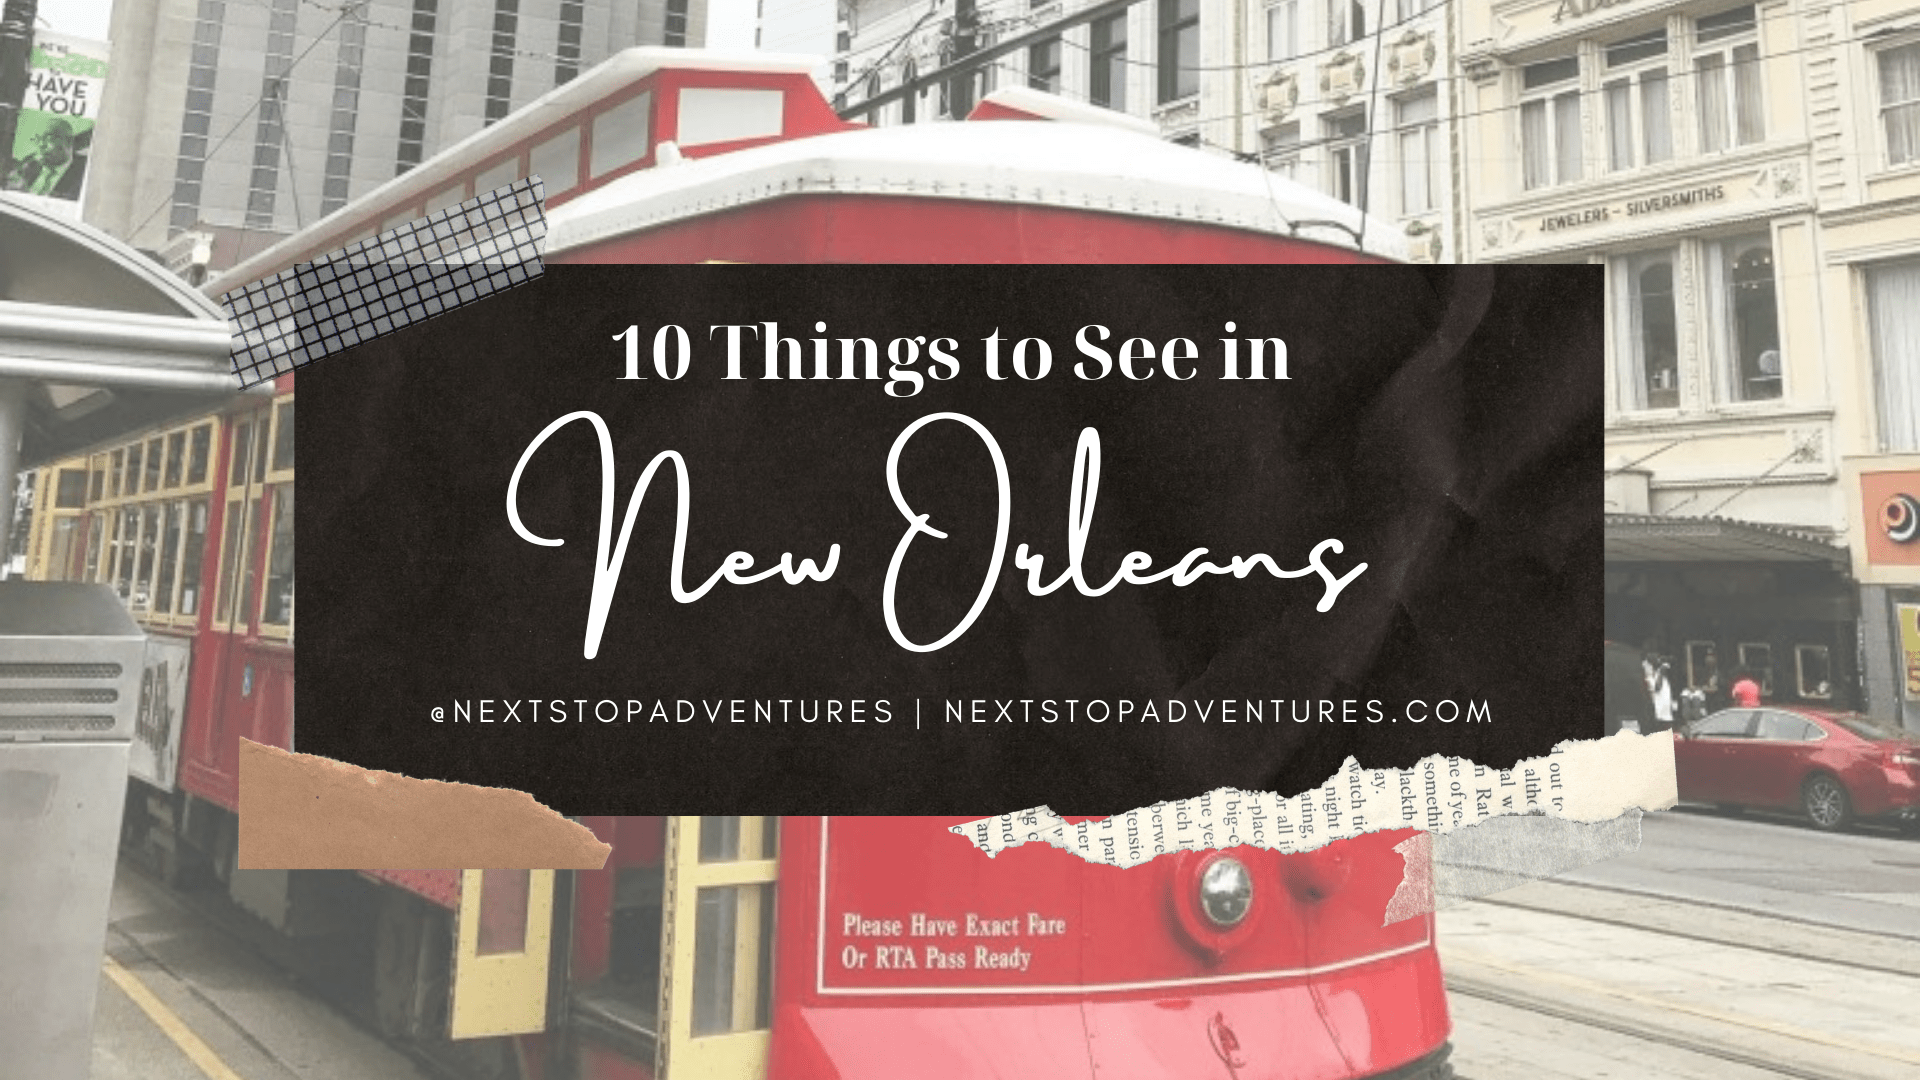 10 Great Things to see in New Orleans